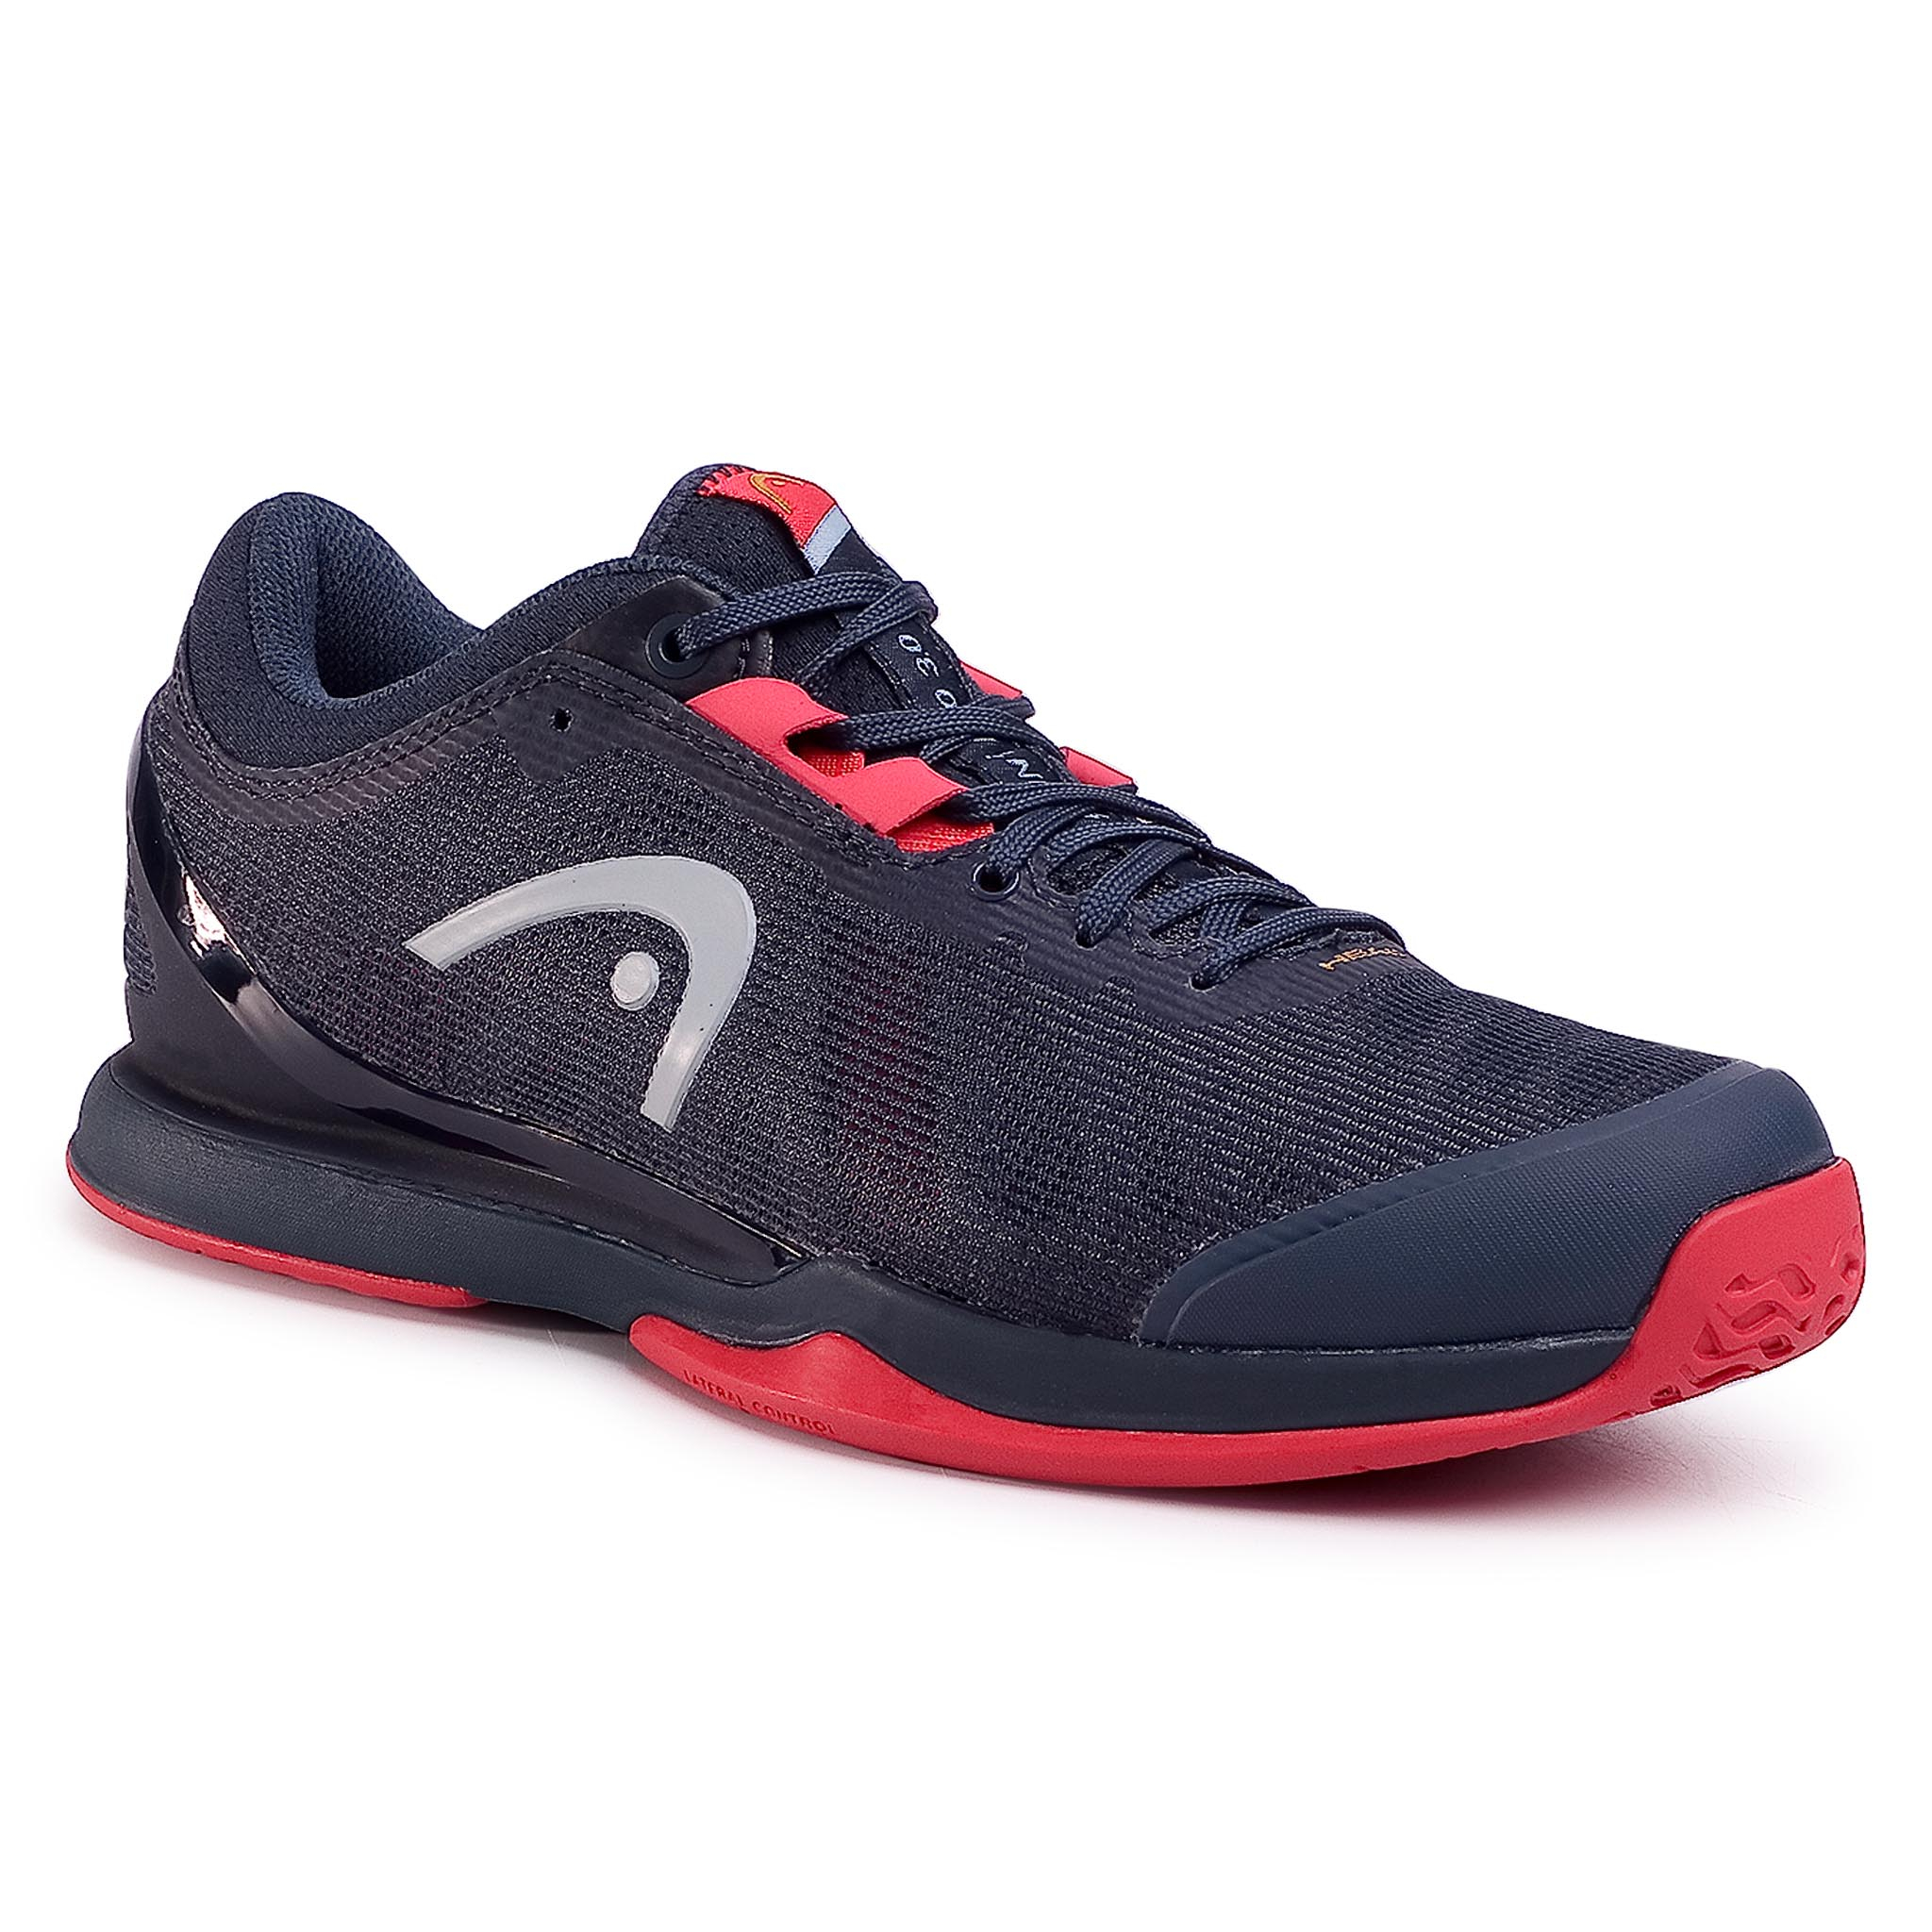 Pantofi Head - Sprint Pro 3.0 273000 Midnight Navy/Neon Red 065 imagine epantofi.ro 2021